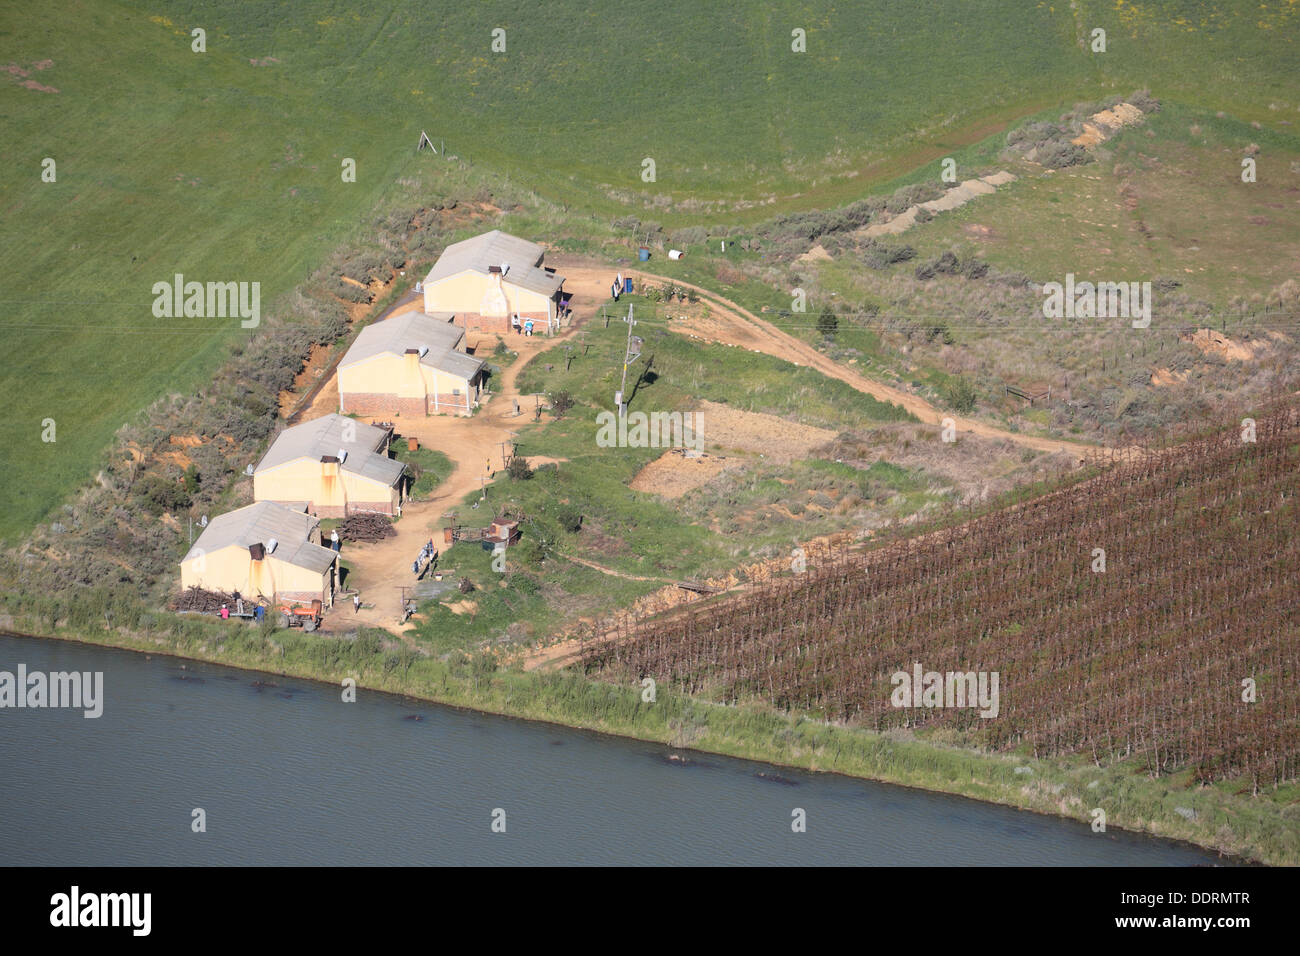 Aerial view of farm houses for farm labourers in the Ceres area, Western Cape Province, South Africa - Stock Image